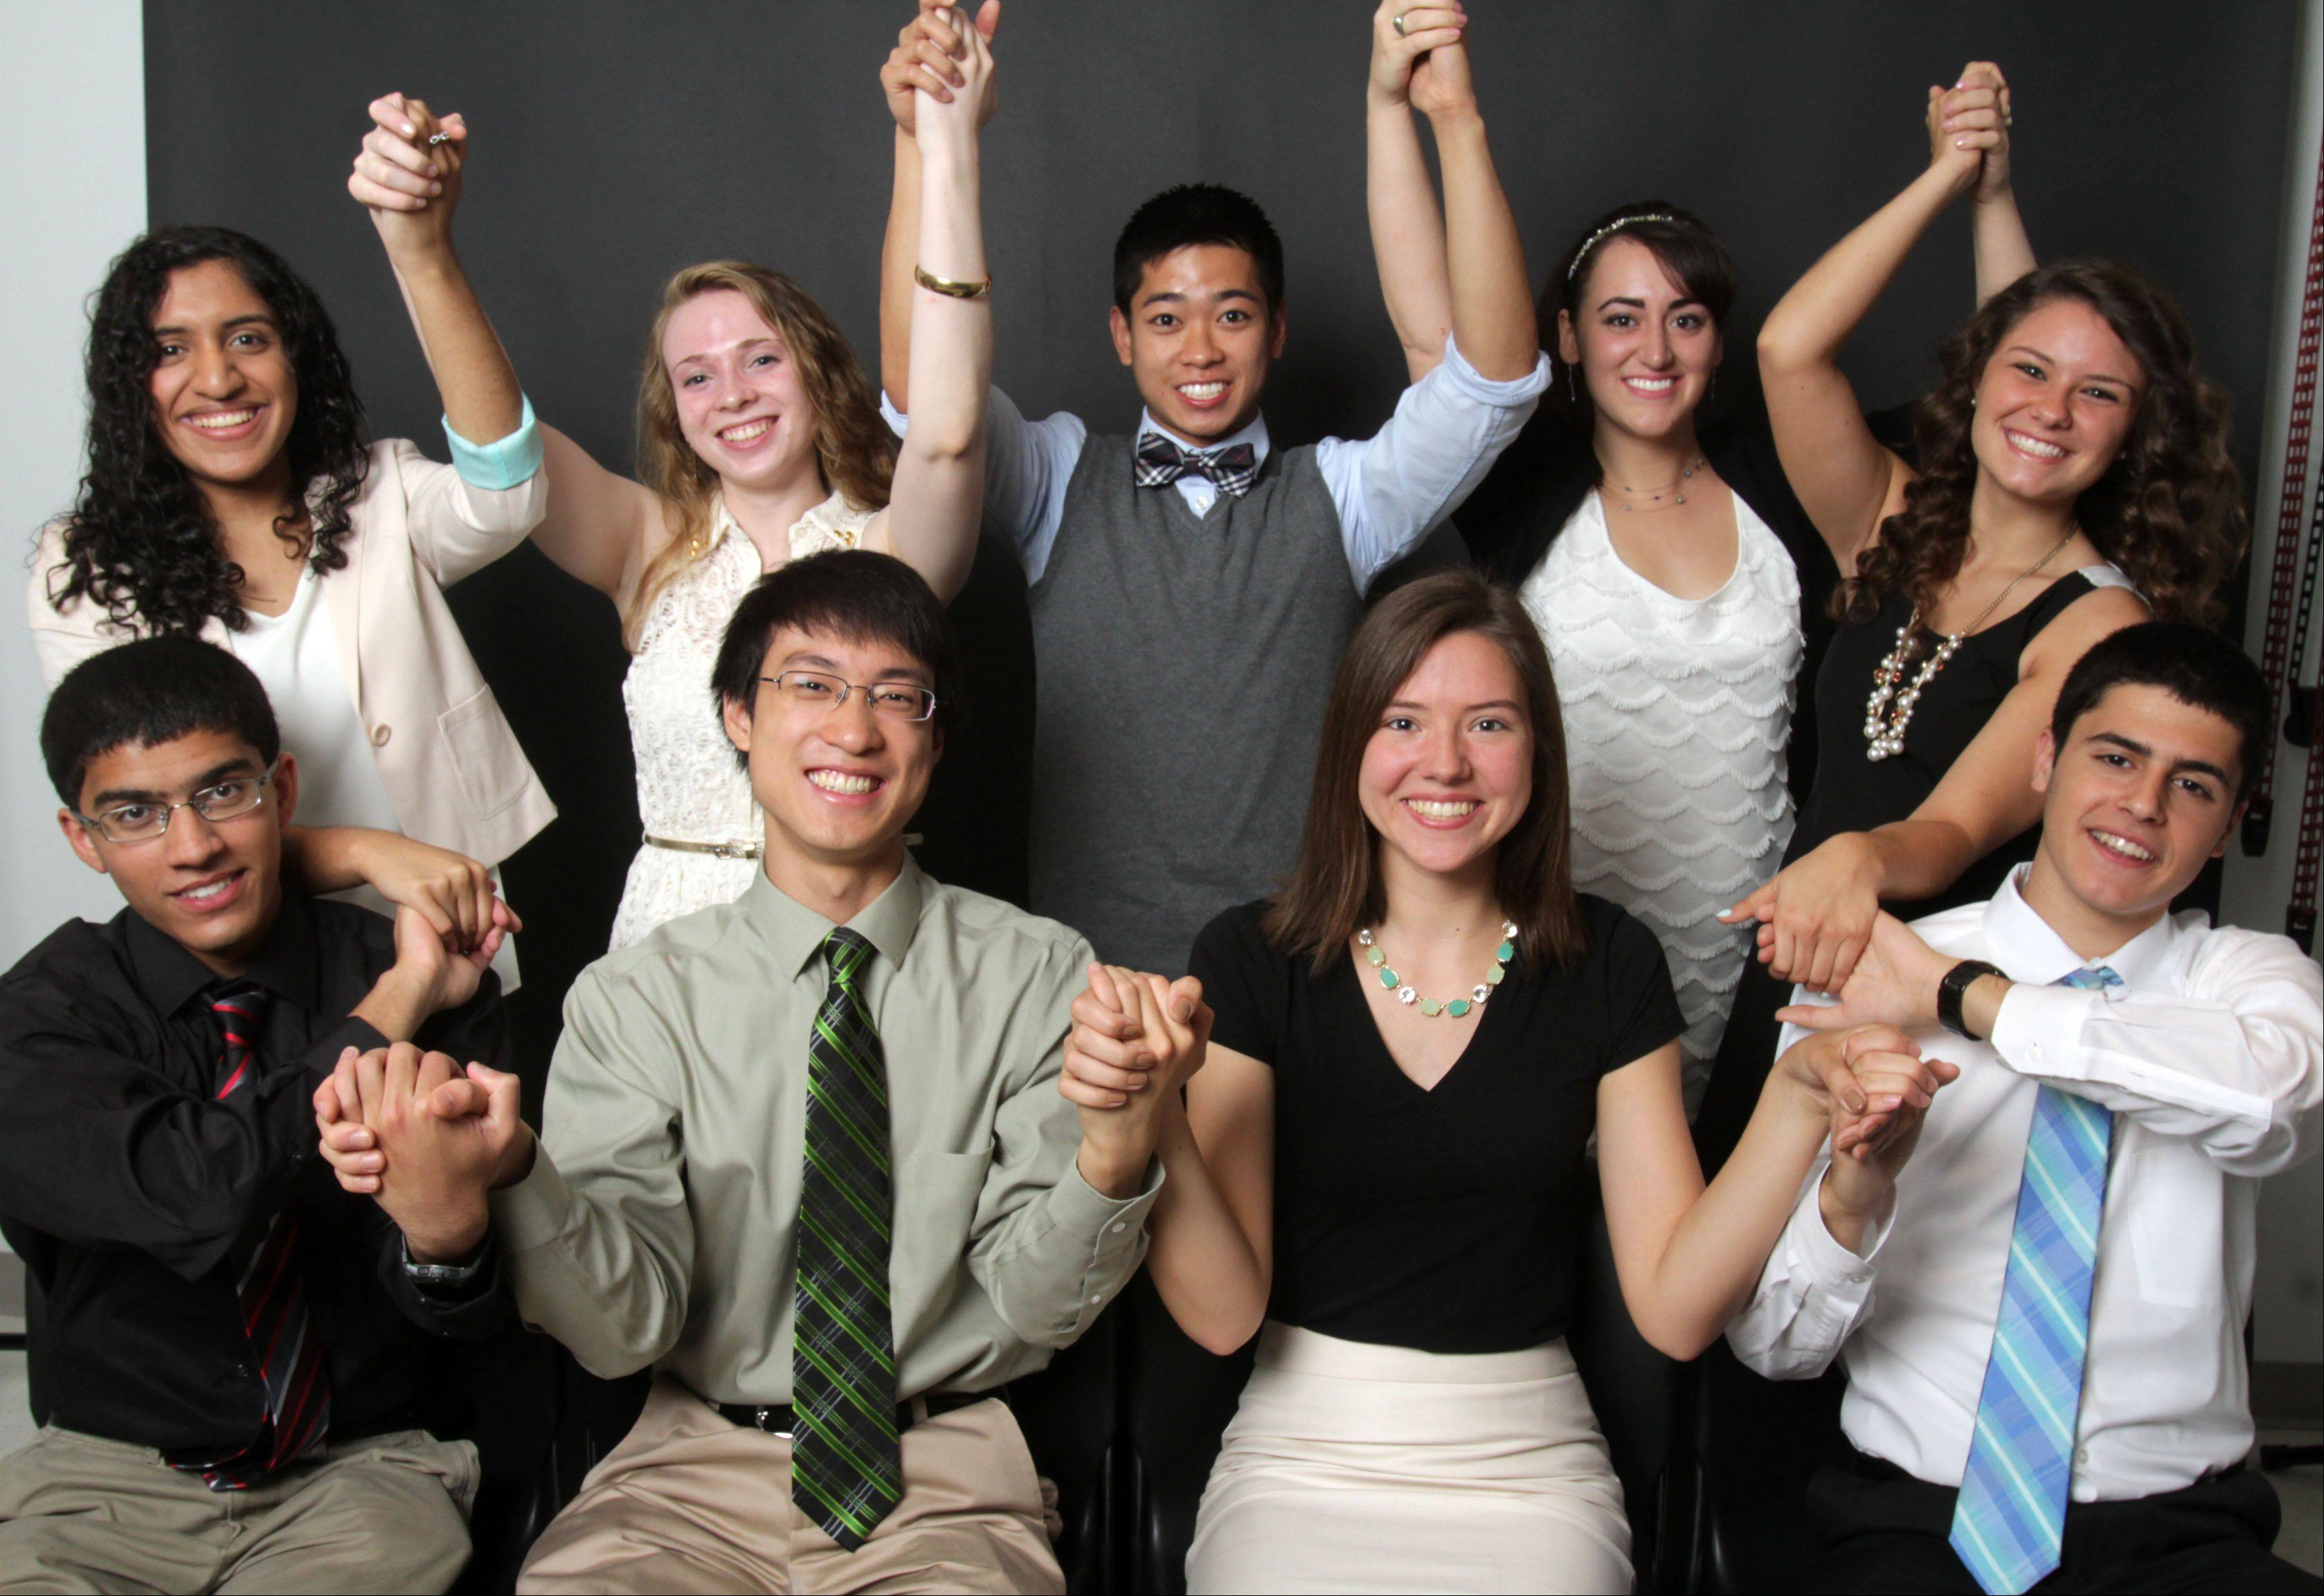 Meet the 2012-13 Daily Herald Lake County Academic Team. Front row, from left: Nishad Phadke, Libertyville High School; Justin Doong, Adlai E. Stevenson High School; Emma Casta�os, Warren Township High School; and Matthew Tabrizi, Vernon Hills High School. Back row, from left: Neeta Abraham, Warren Township High School; Adele Padgett, Adlai E. Stevenson High School; Daniel Santos and Brienne Lubor, both of Carmel Catholic High School; and Kaitlyn Norum, Grayslake North High School. Not pictured: Caitlin McCarthy, Woodlands Academy of the Sacred Heart.